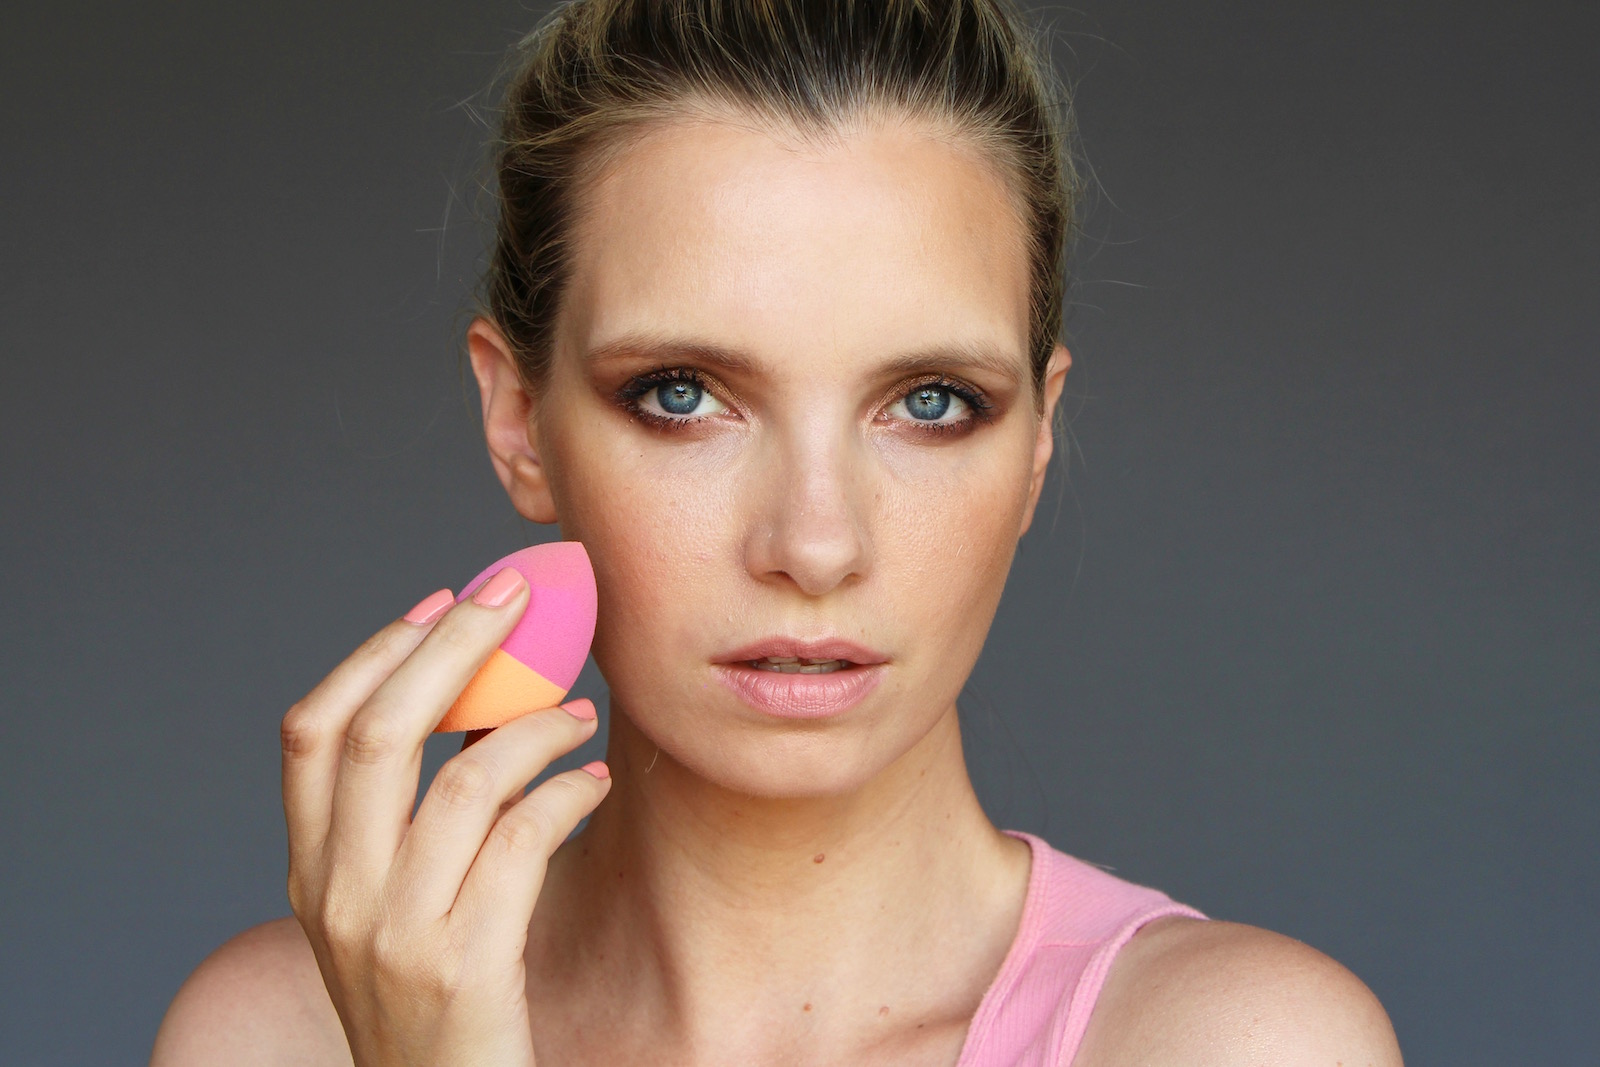 How To Apply Full Coverage Foundation A Model Recommends